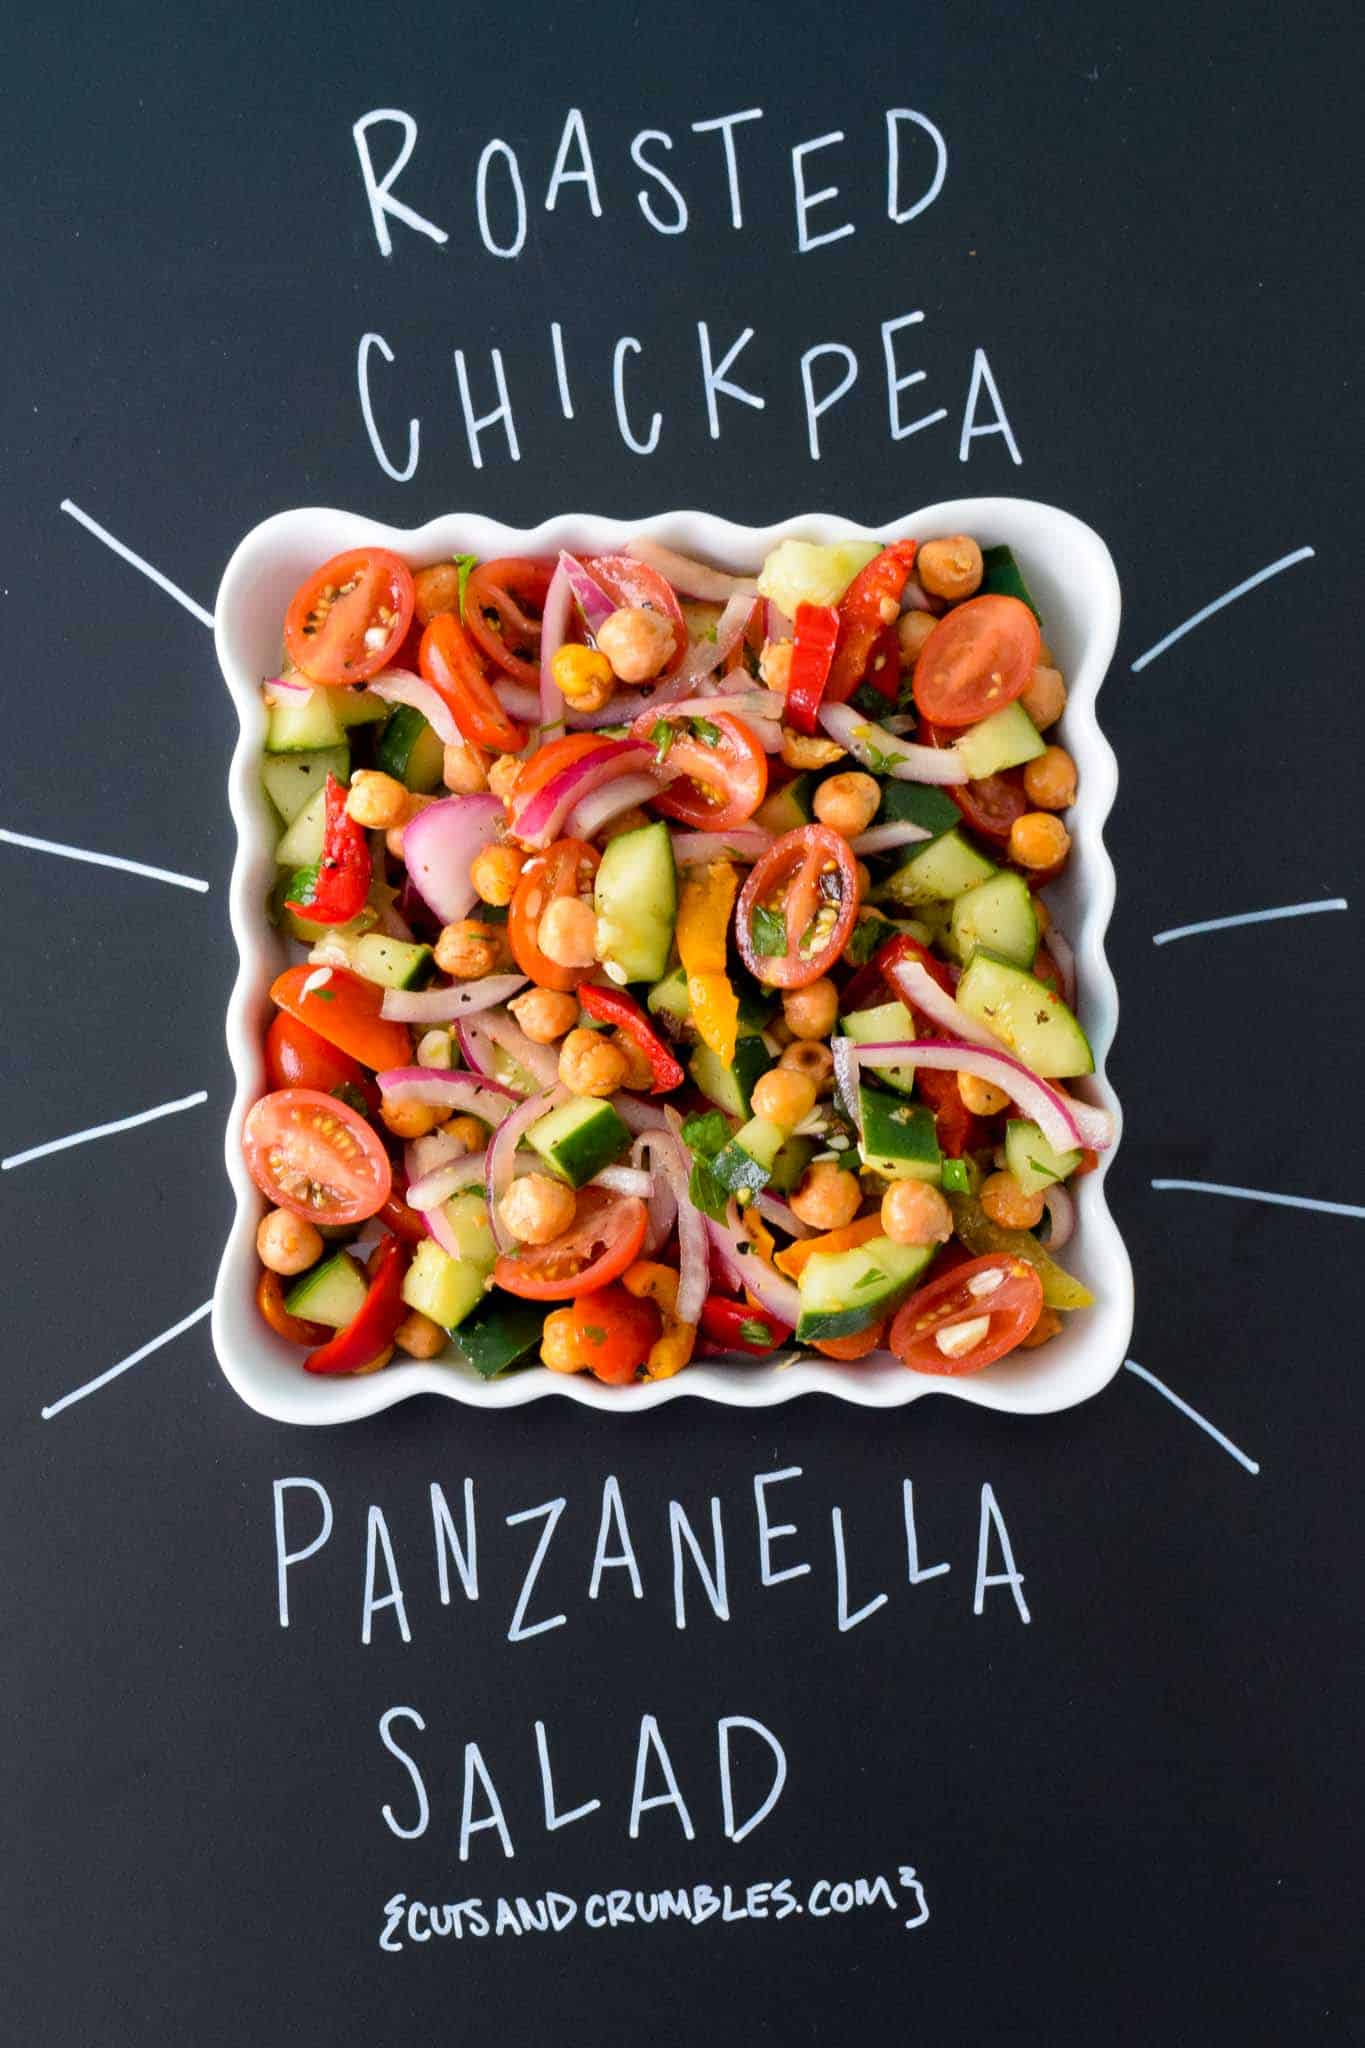 Roasted Chickpea Panzanella Salad with title written on chalkboard